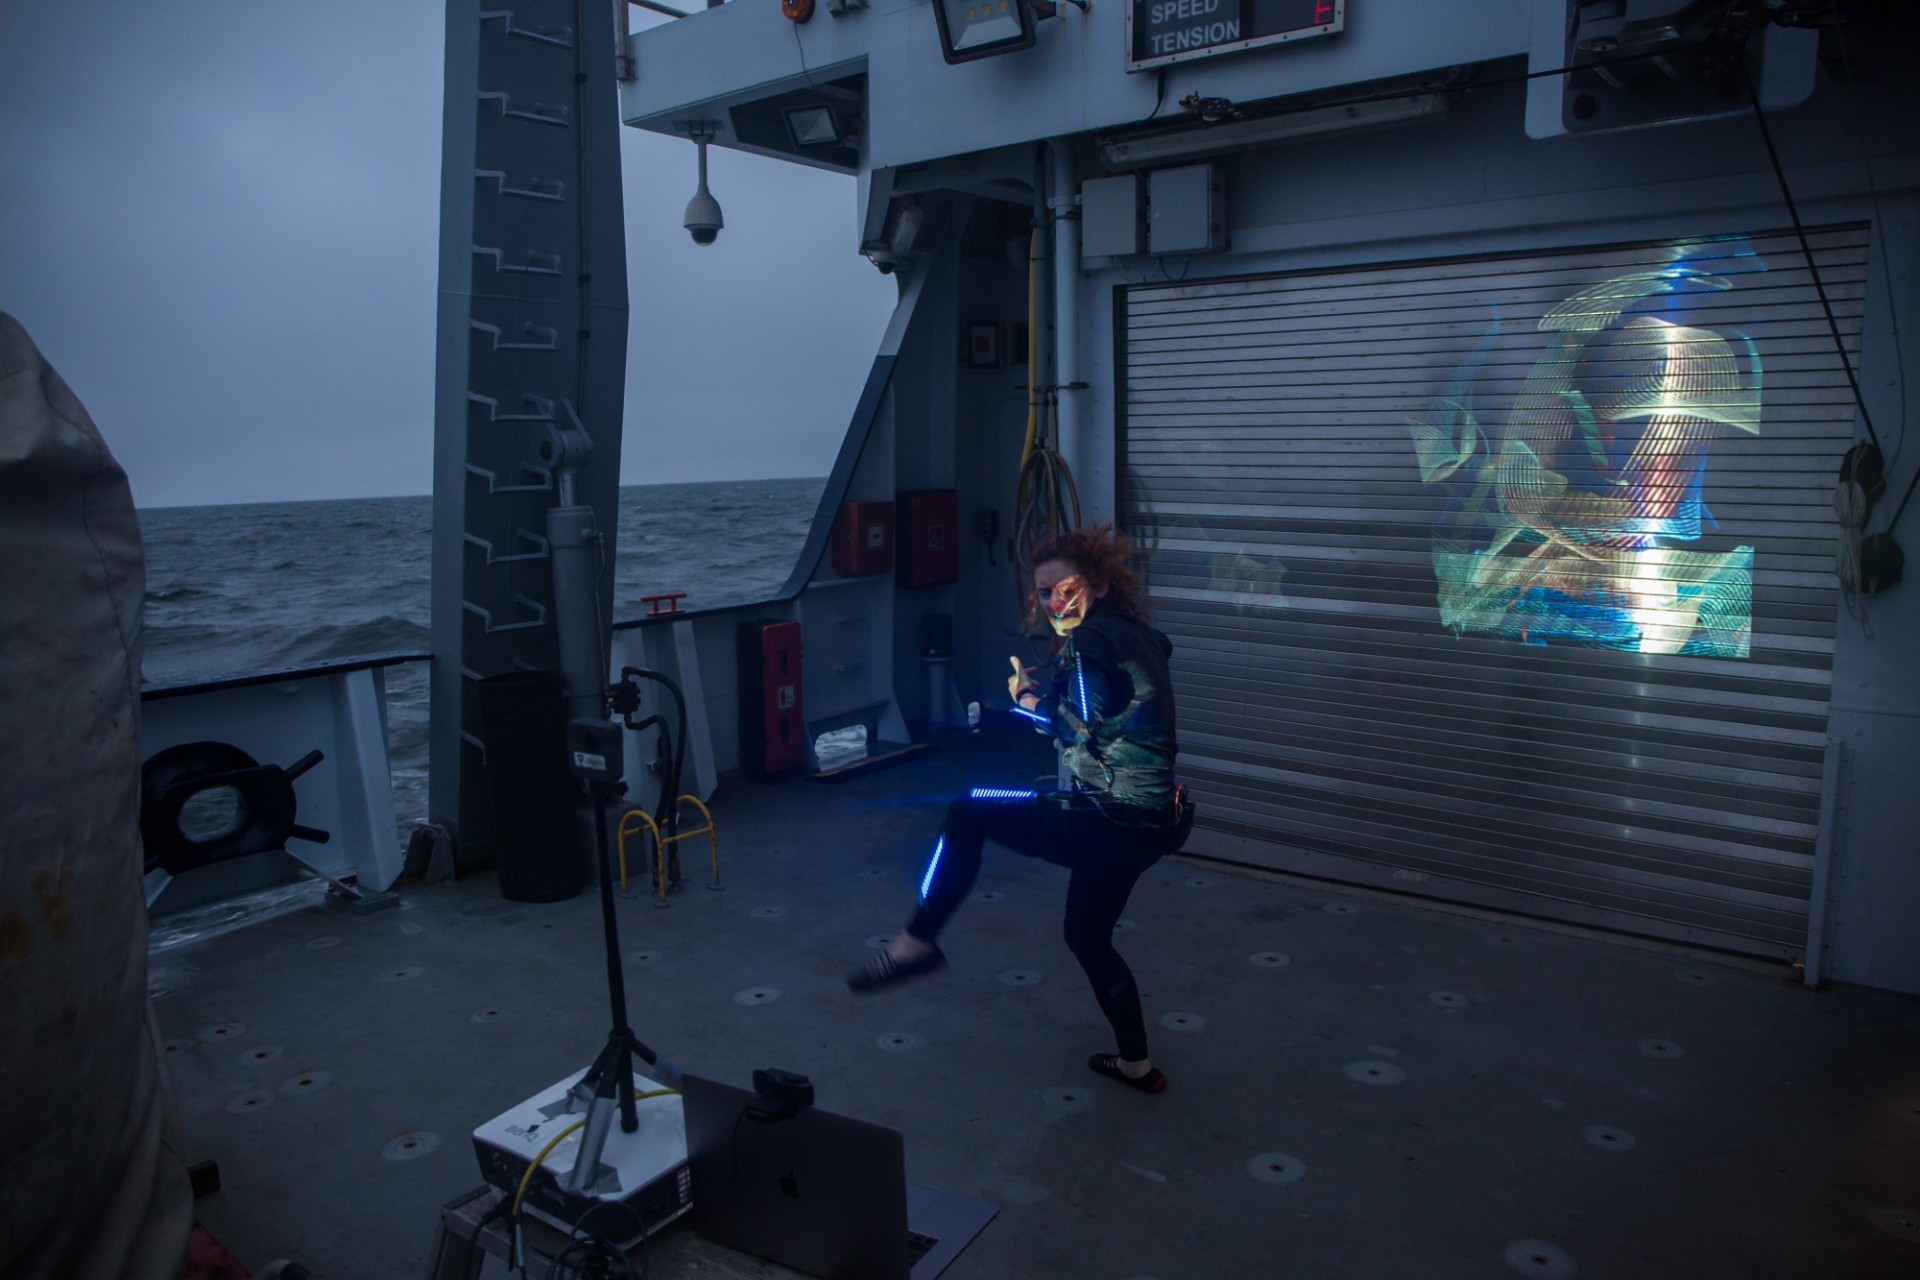 Lori performing a light painting piece on the aft deck of R/V Falkor.